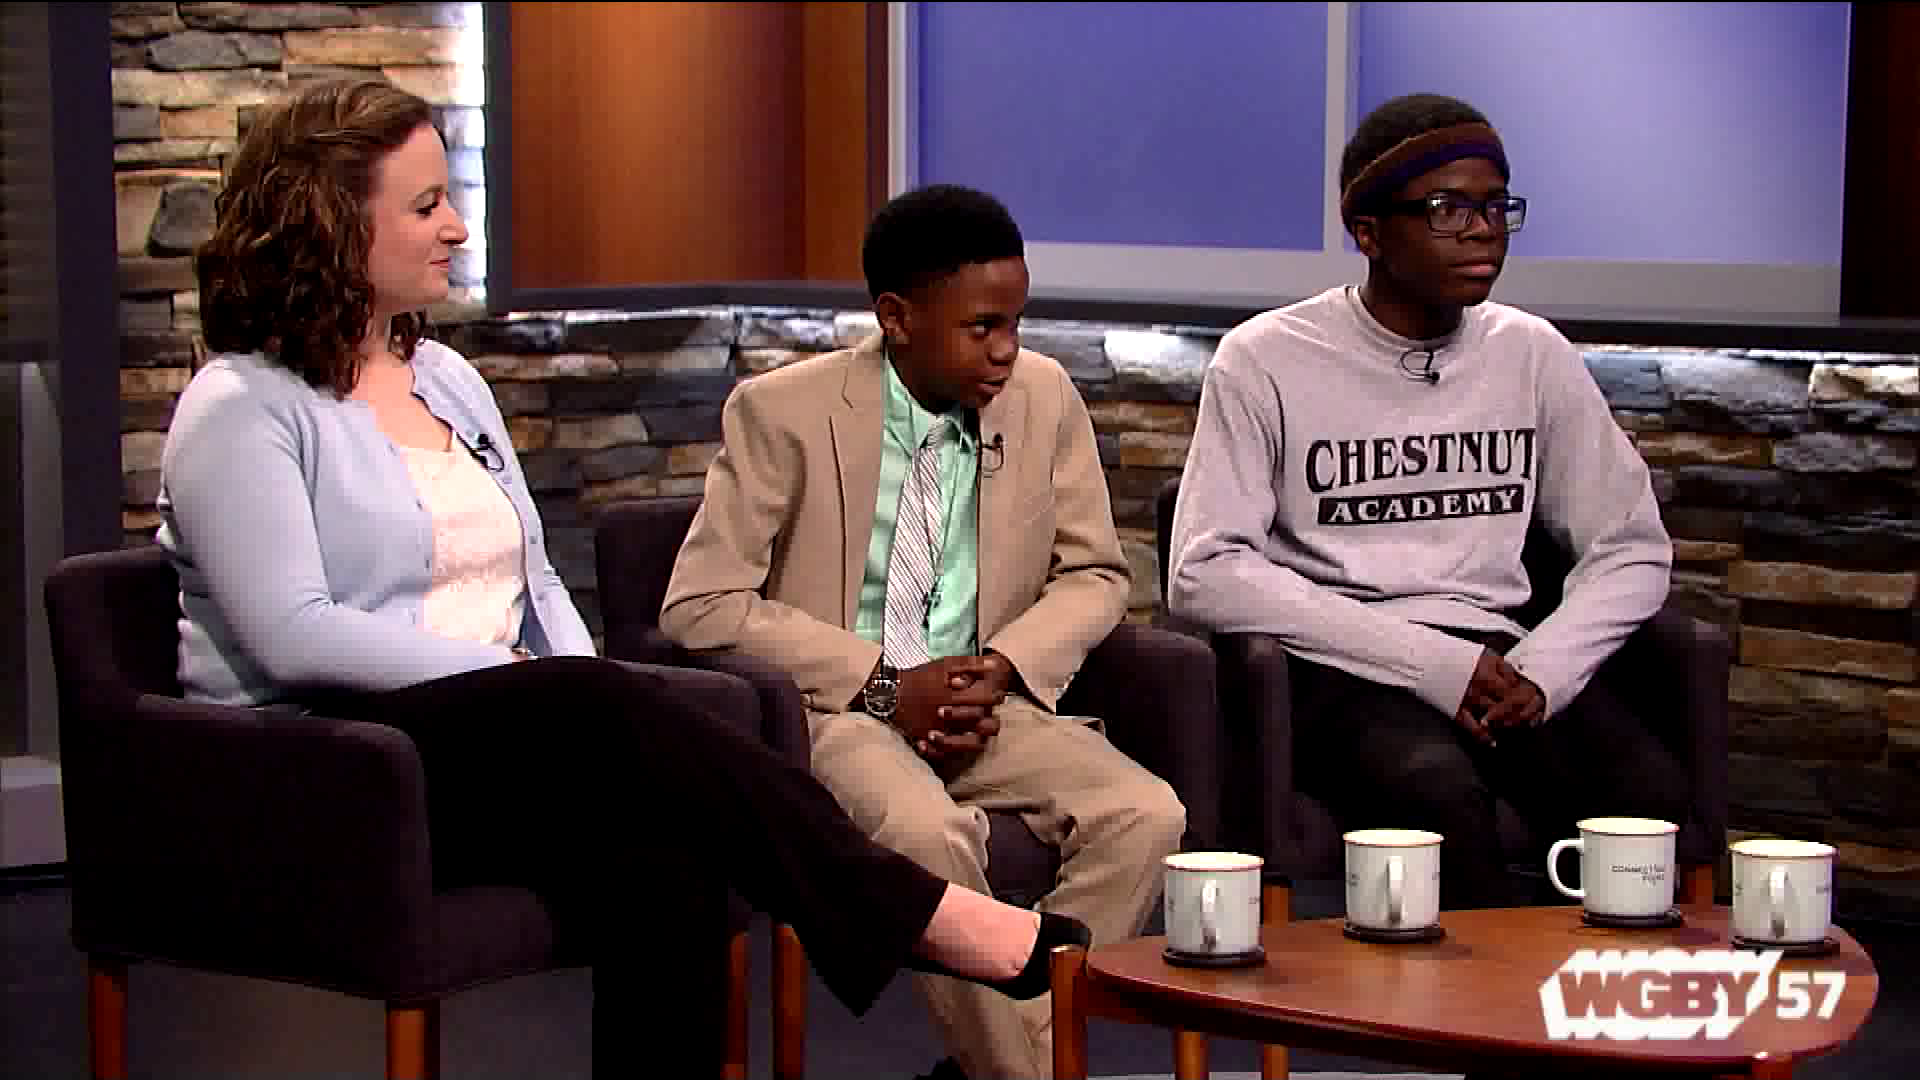 A partnership between Junior Achievement and Chestnut Academy in Springfield, MA encourage student entrepreneurship and business skills through a Shark Tank-like competition and other activities. Connecting Point speaks with two students who are already positioning their products to hit the market.